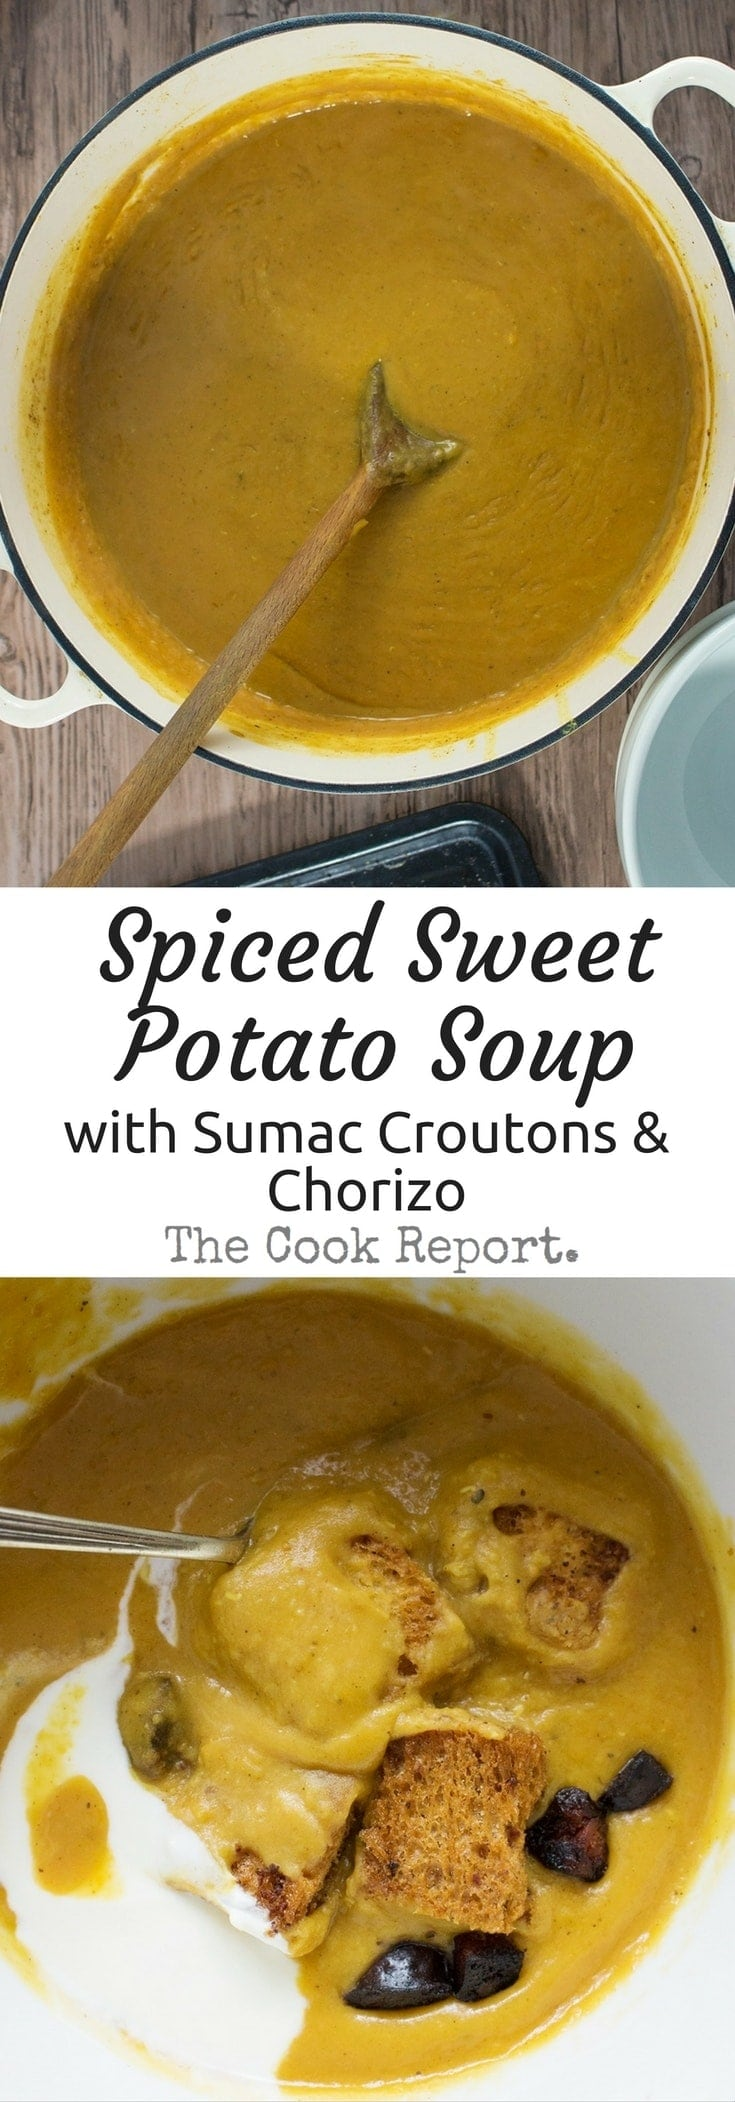 Sweet potato soup spiced with ras-el-hanout and topped with sumac croutons and crispy chorizo. Finish off with a dollop of yoghurt for a filling winter meal.